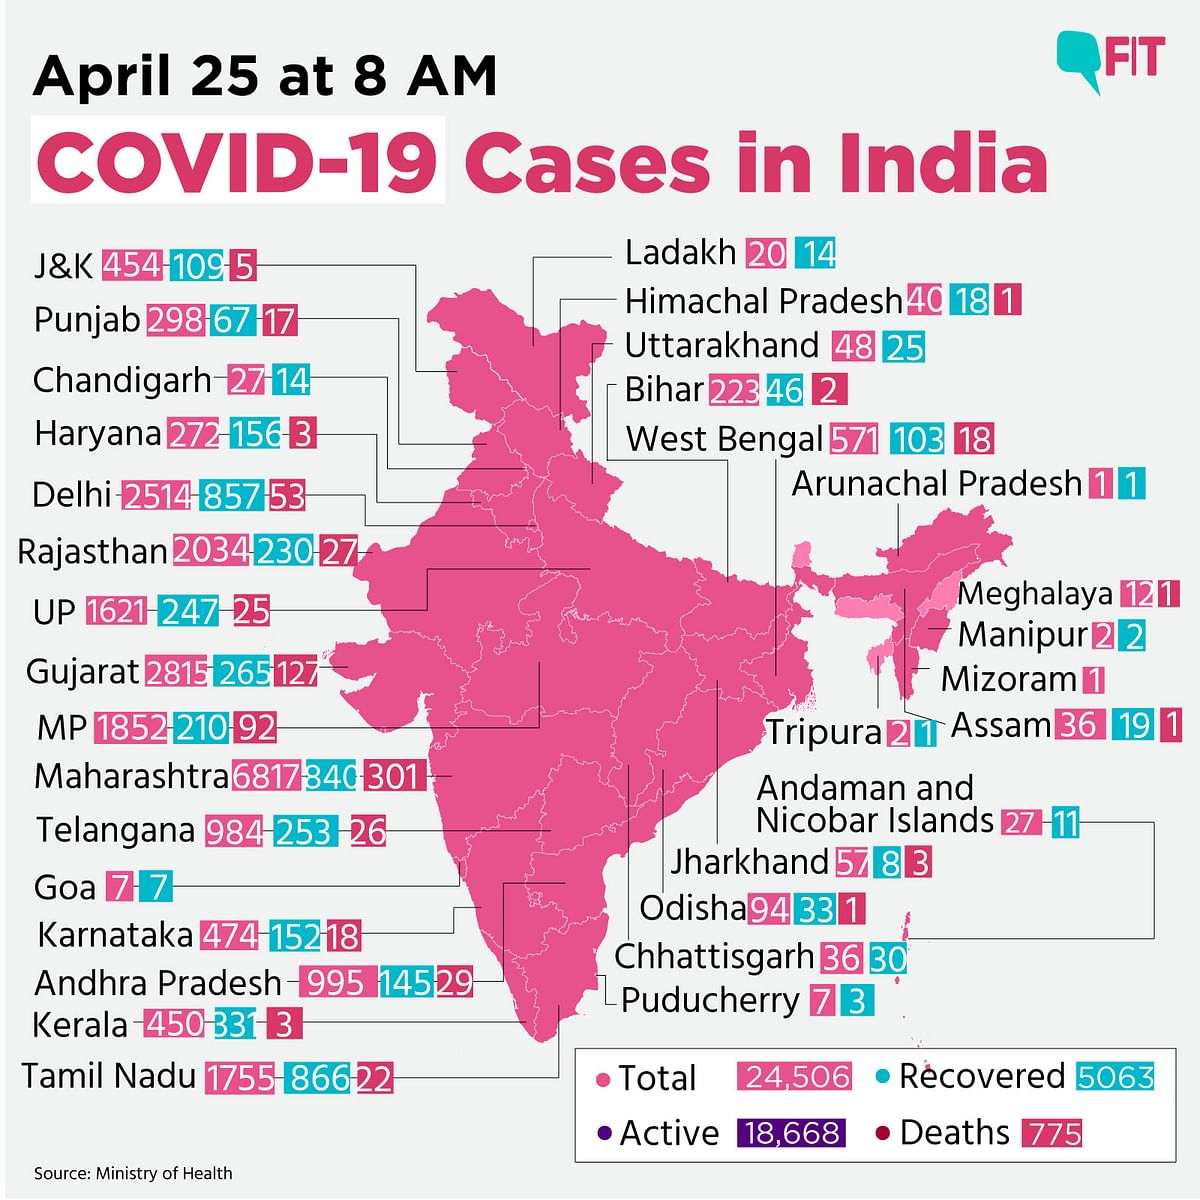 COVID-19 India: Death Toll Rises to 775, Cases Climb to 24,506